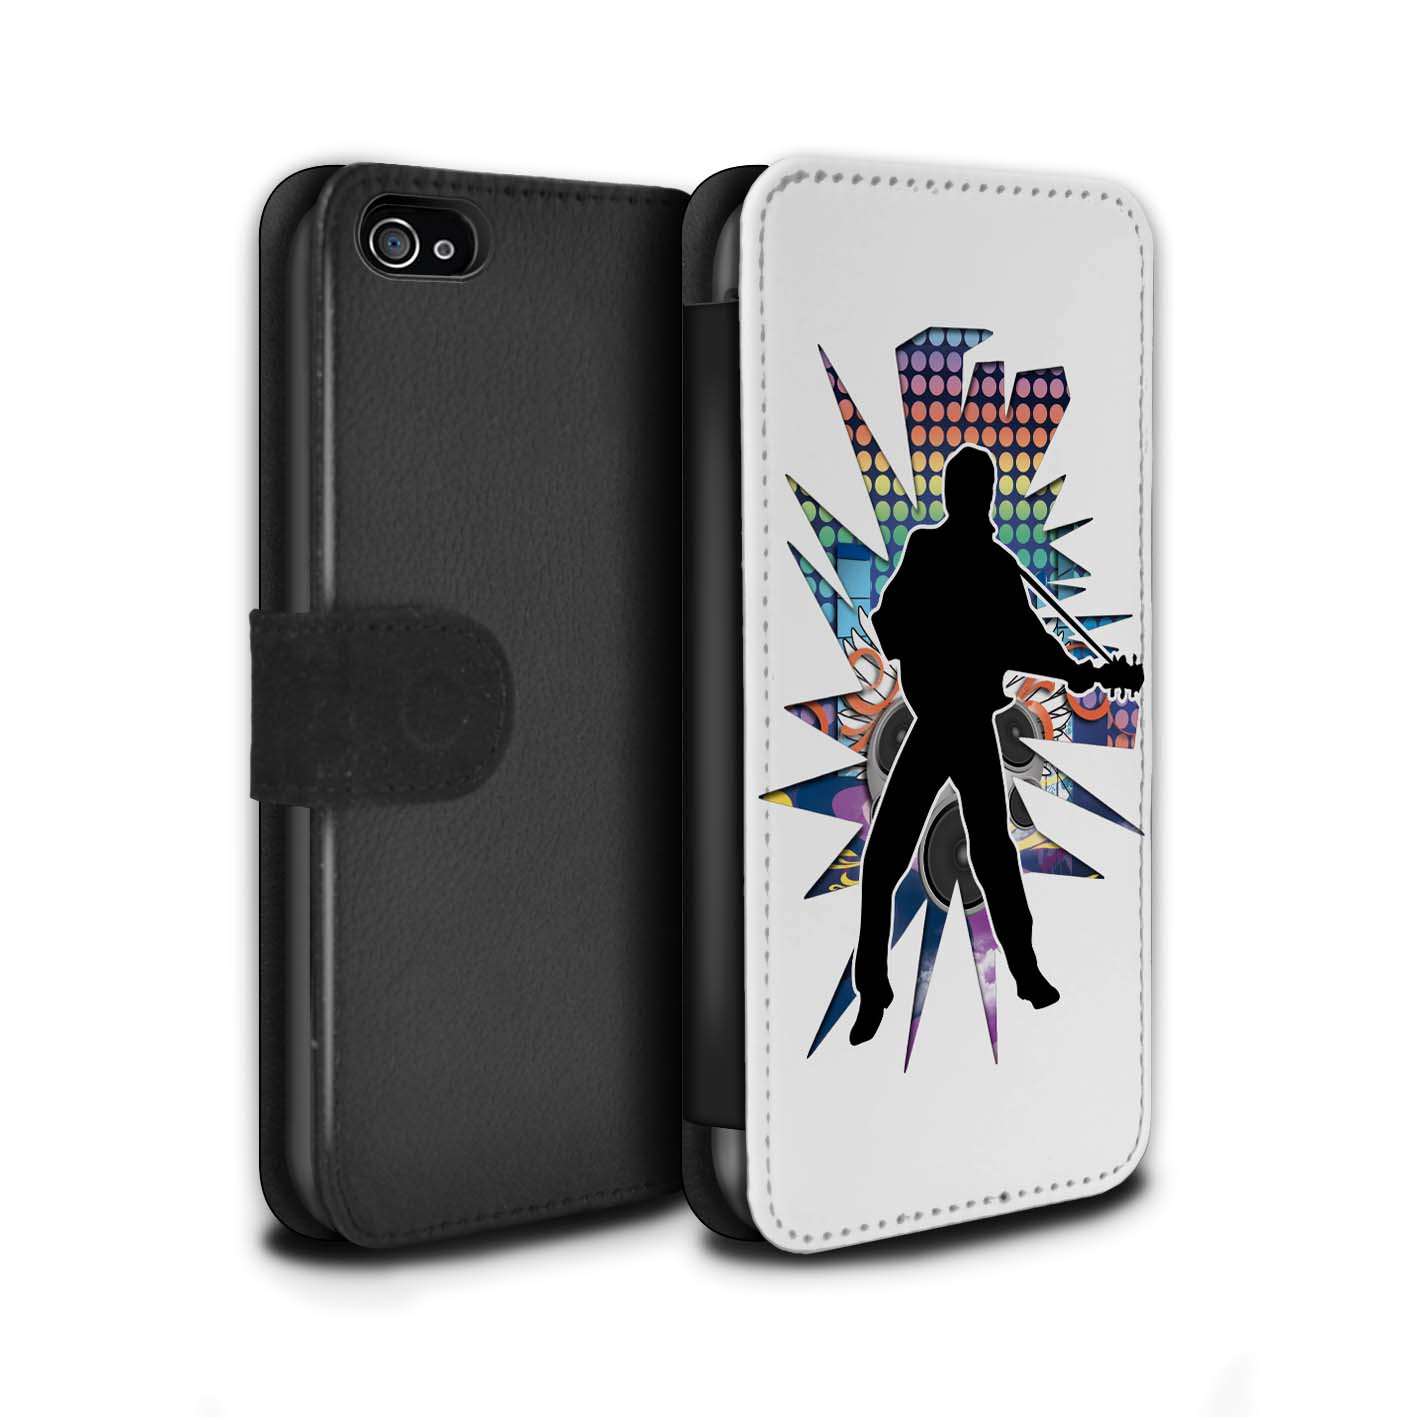 STUFF4-Coque-Etui-Case-Cuir-PU-pour-Apple-iPhone-4-4S-Rock-Star-Pose